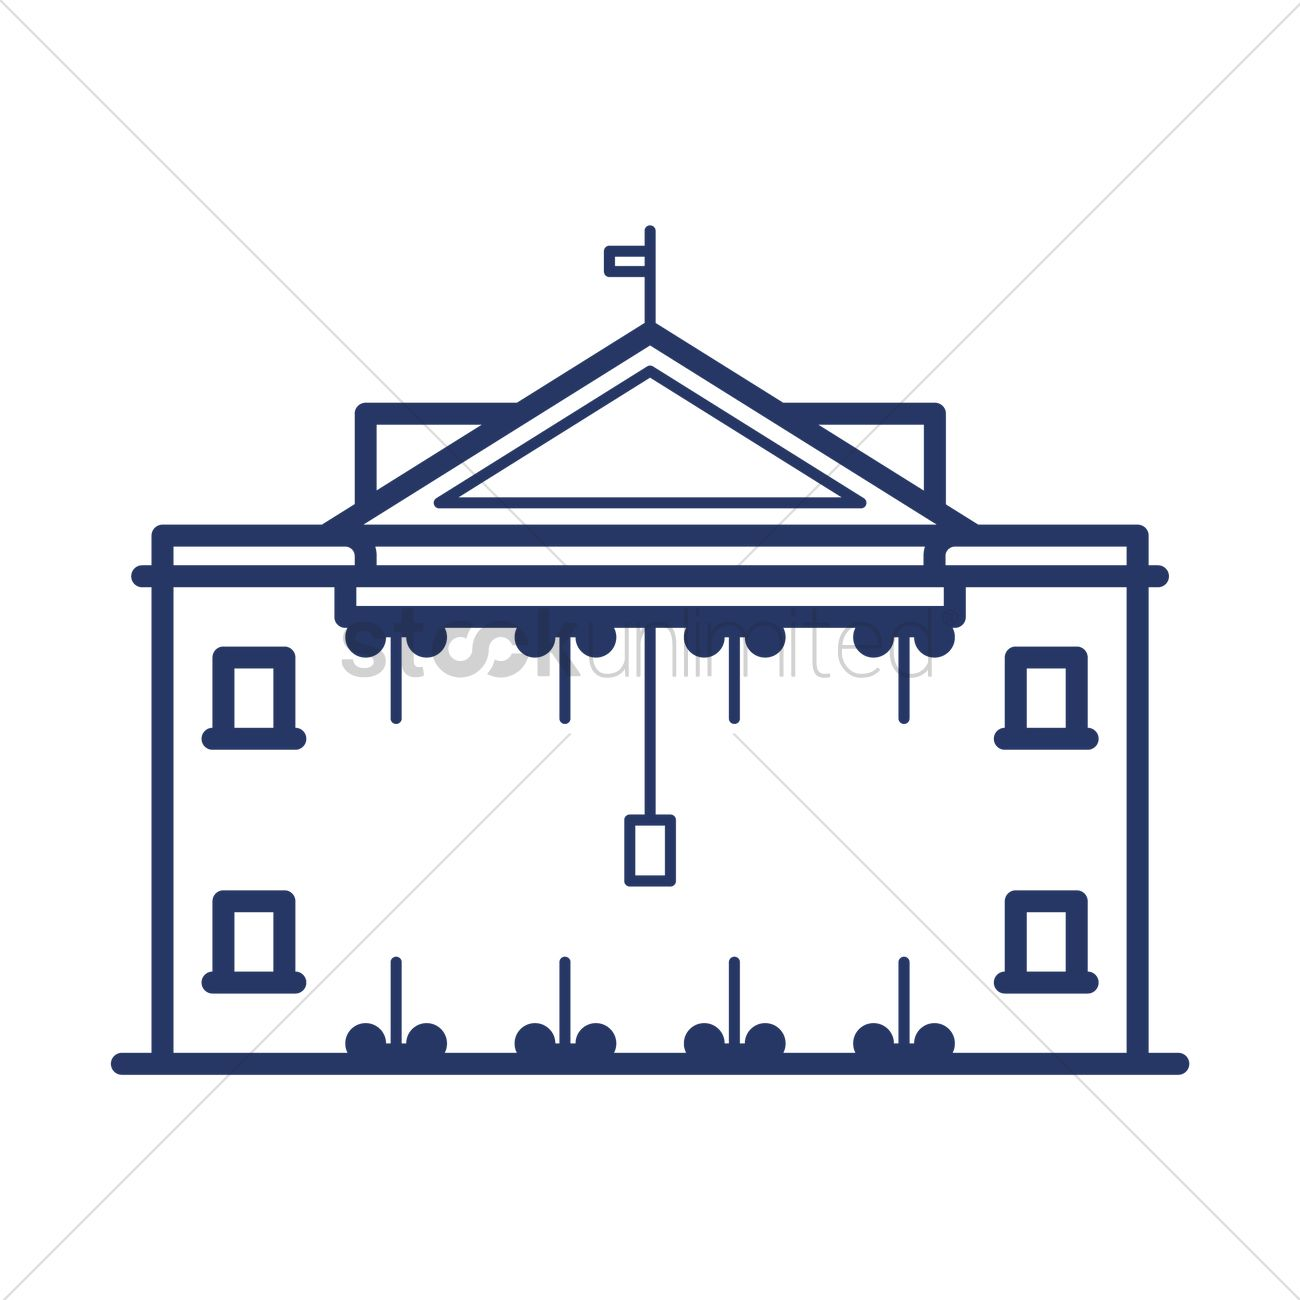 white house vector image 1557991 stockunlimited rh stockunlimited com white house victory garden 2017 white house vector free